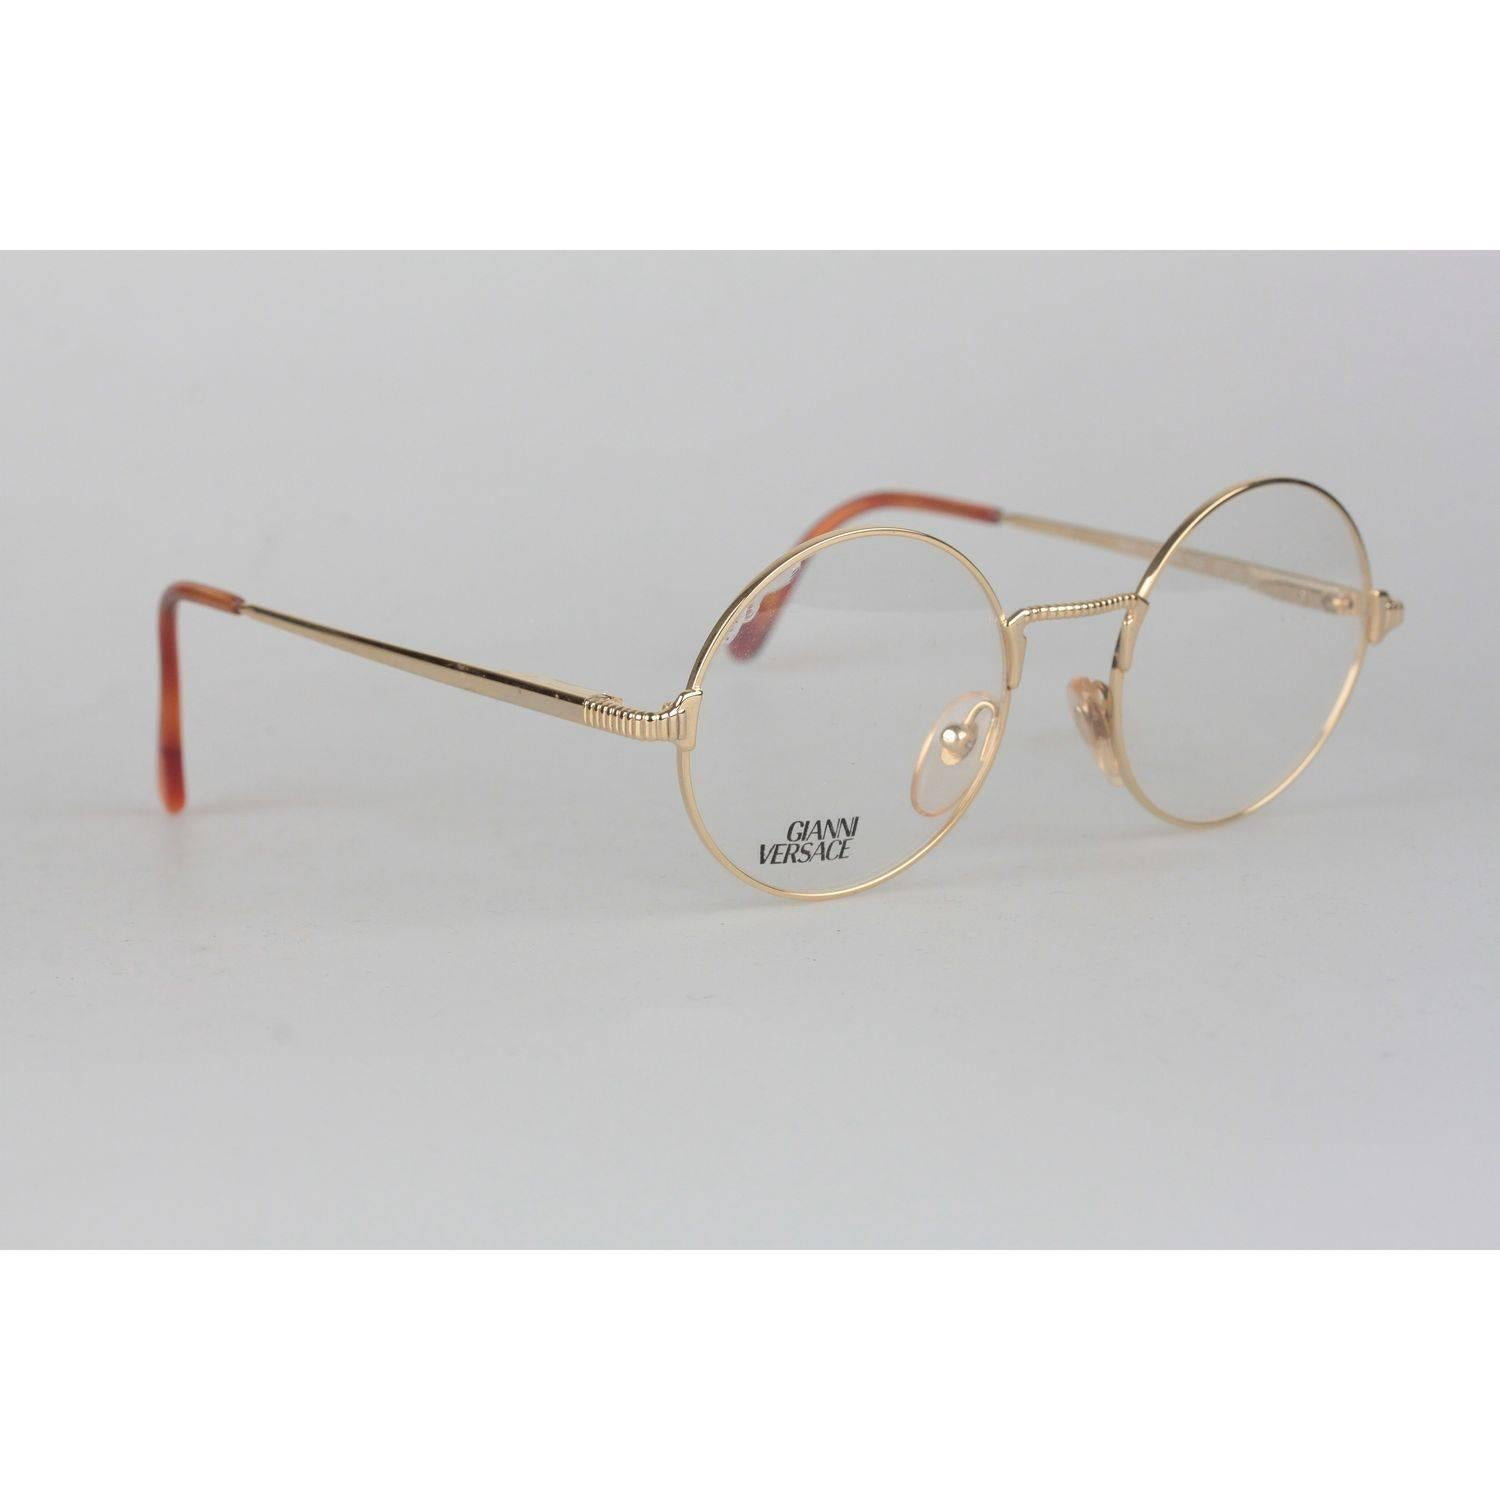 3a7600142a1e Gianni Versace Vintage Gold Metal Round Frame Mod 540 Eyeglasses NOS For  Sale at 1stdibs